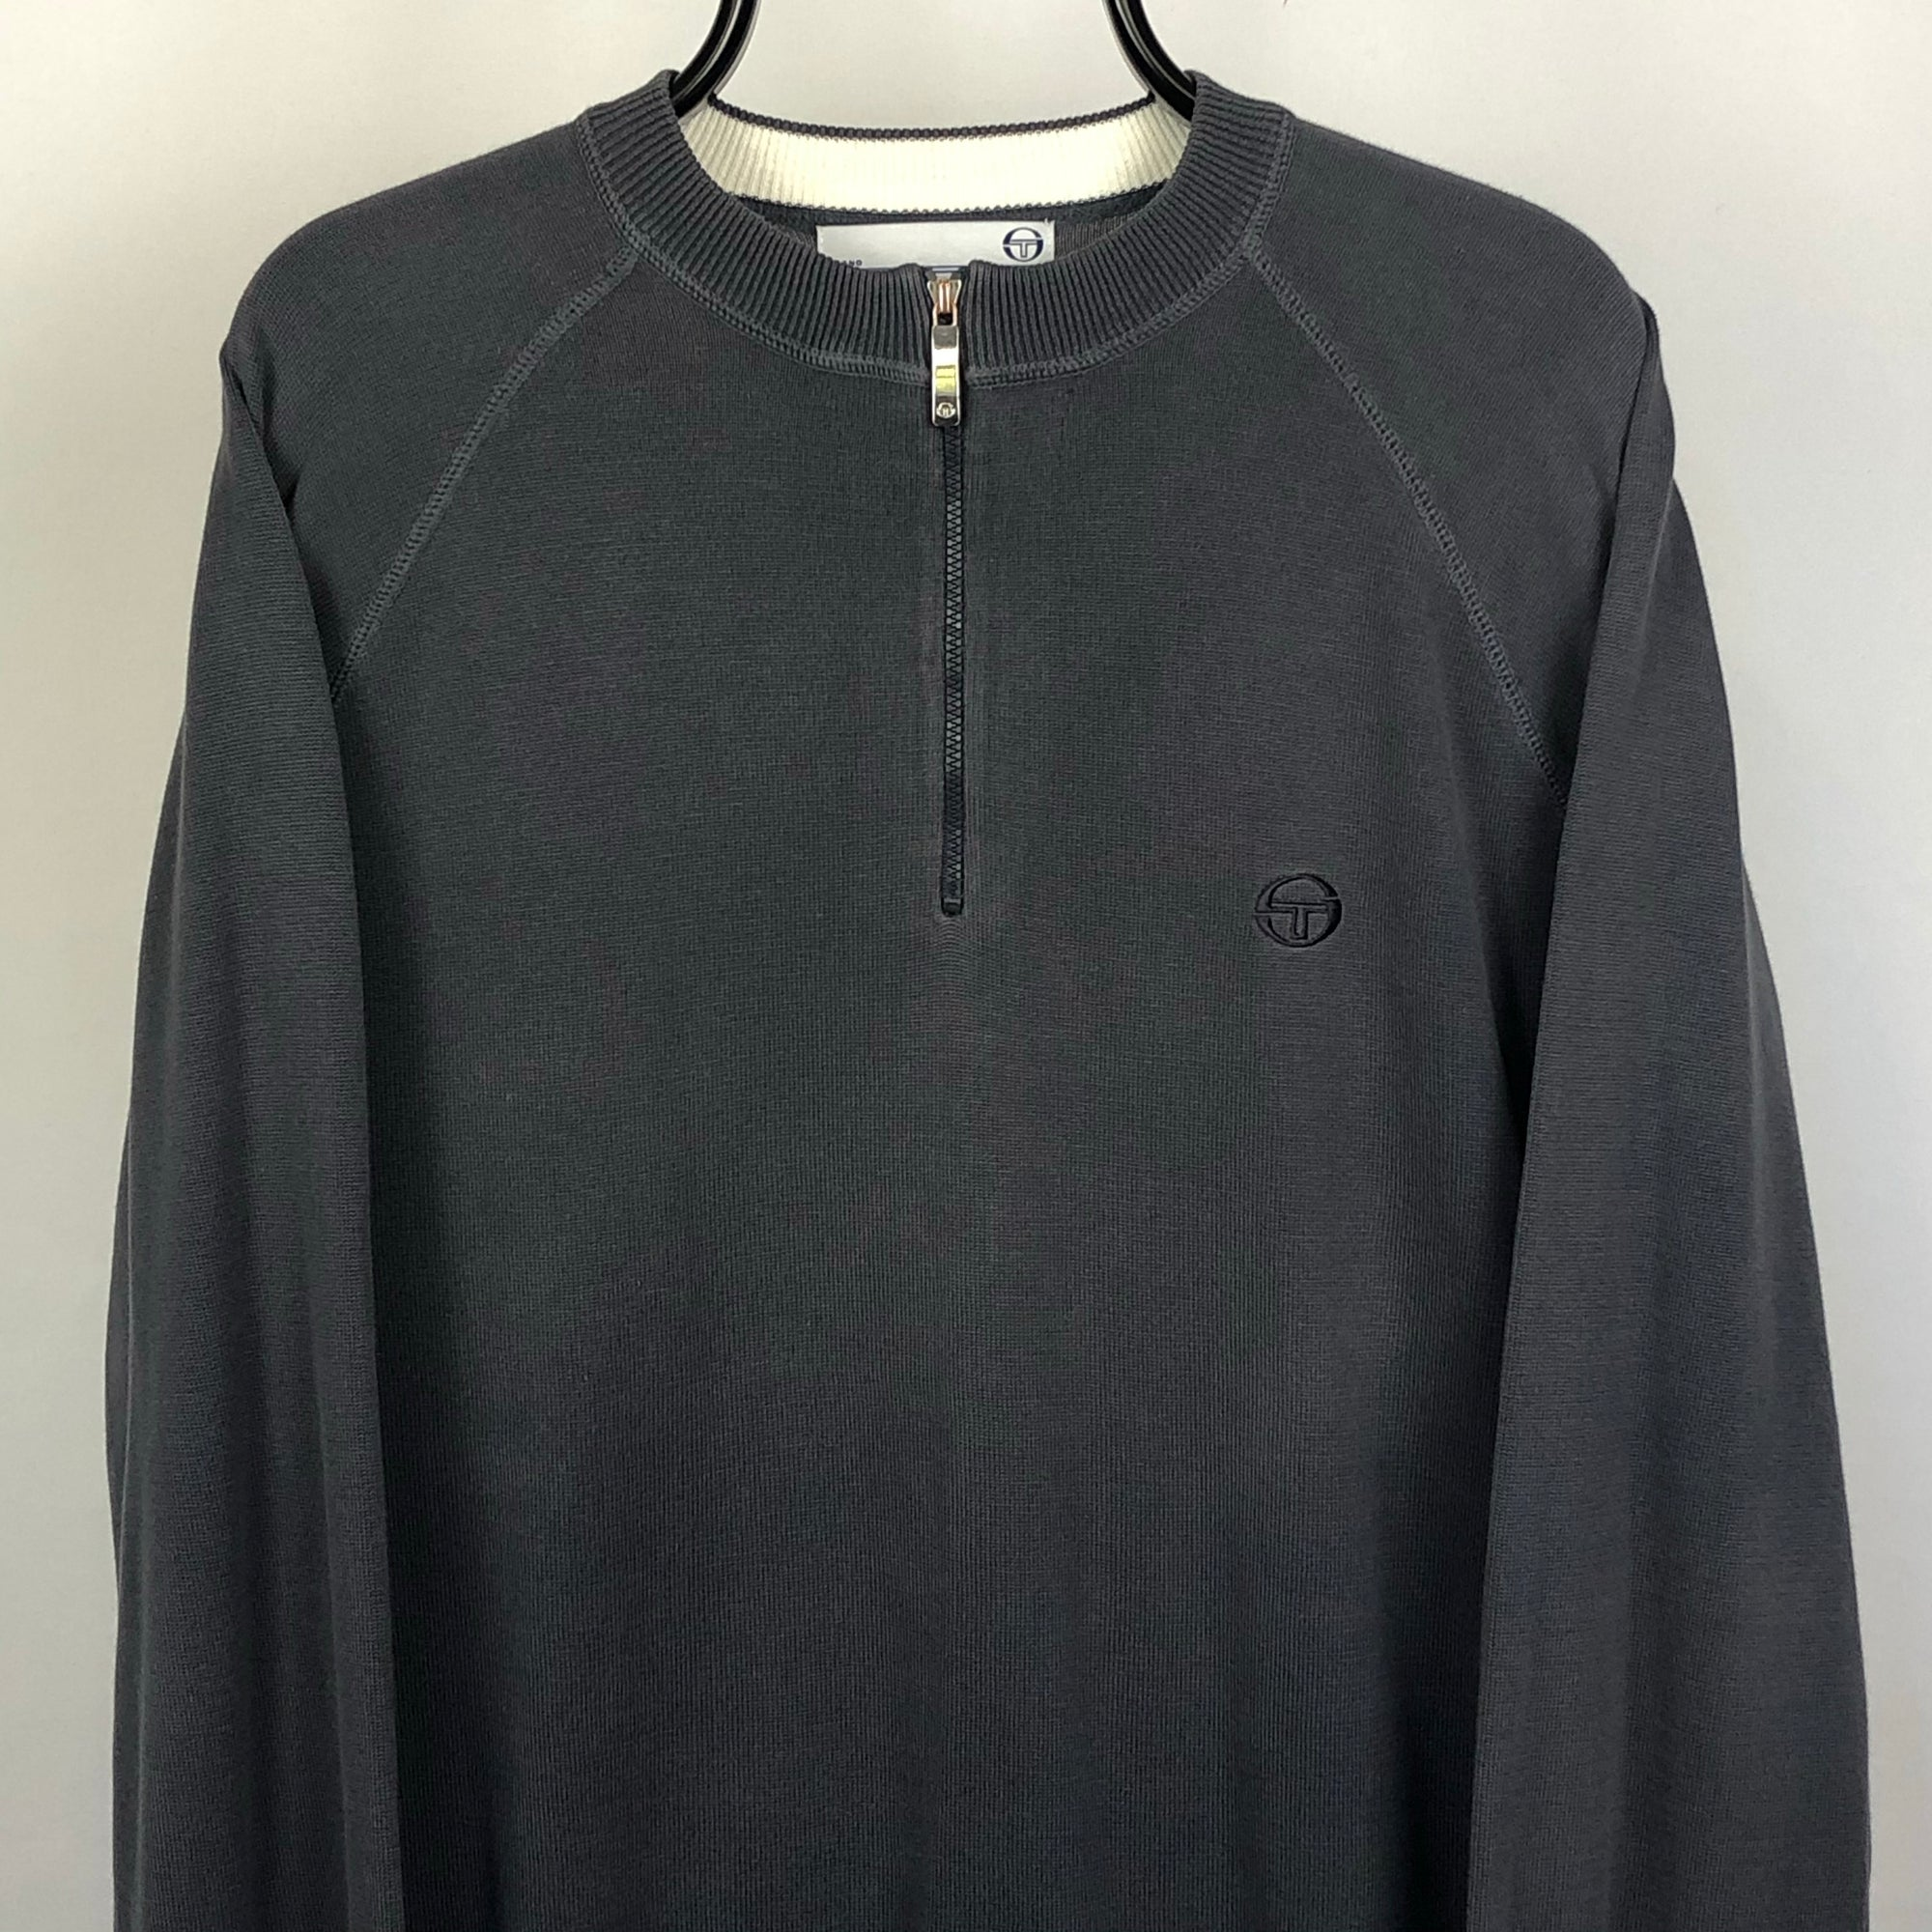 Vintage Sergio Tacchini 1/4 Zip - Men's Large/Women's XL